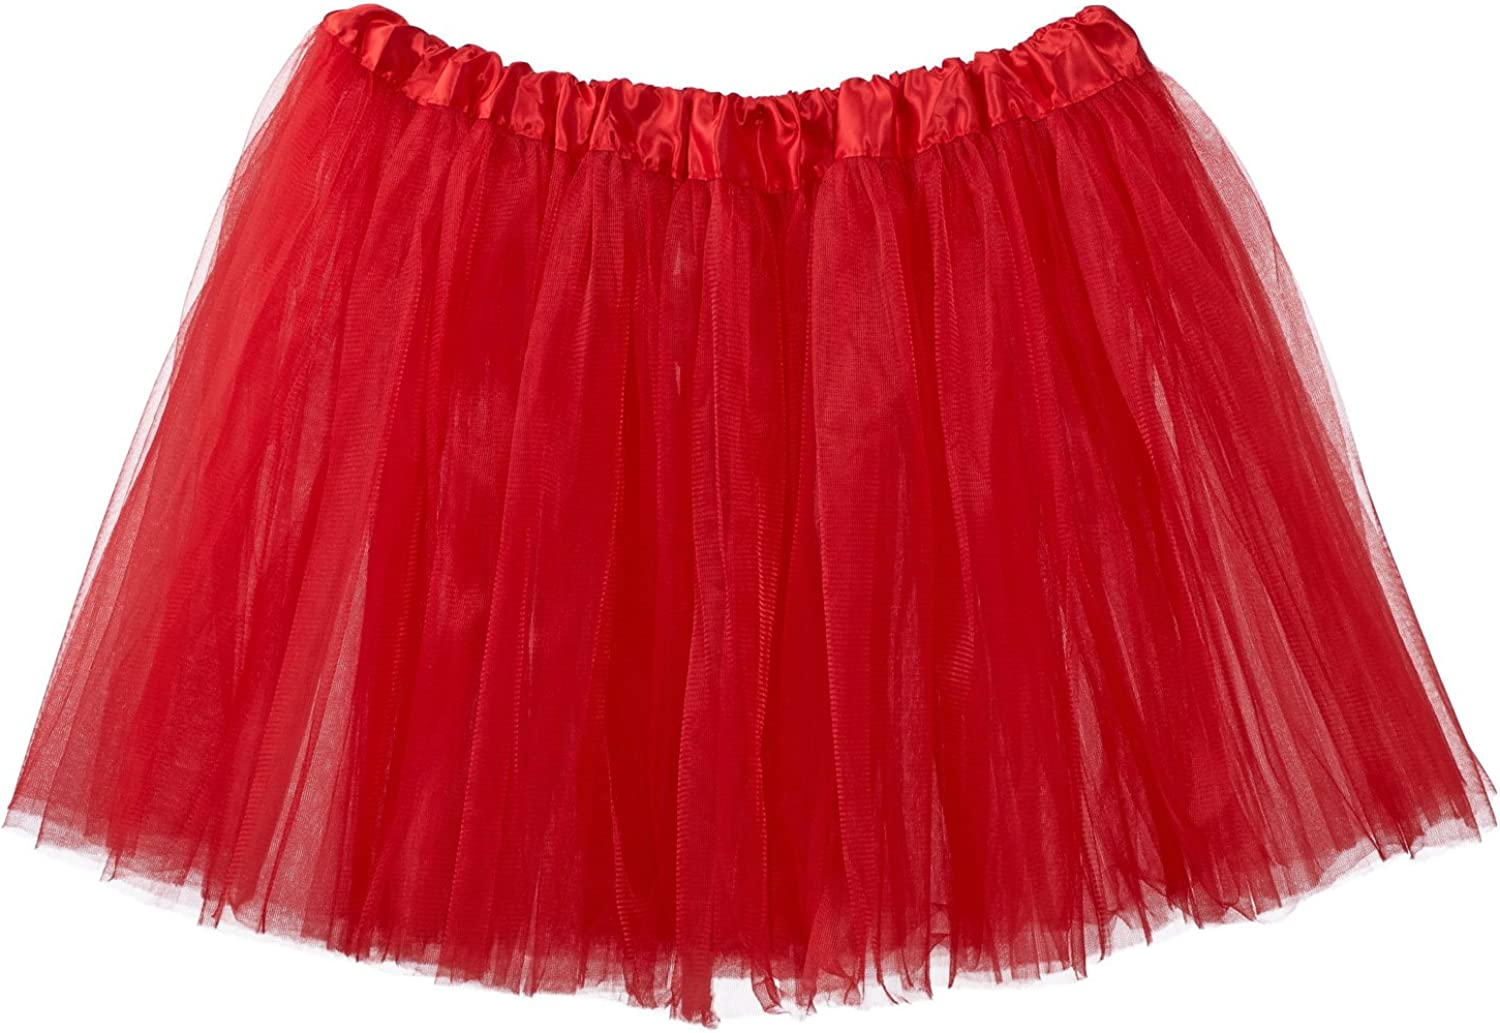 My Lello Adult Tutu Skirt, Classic Elastic 3 Layer Tulle Tutu for Women and Teens